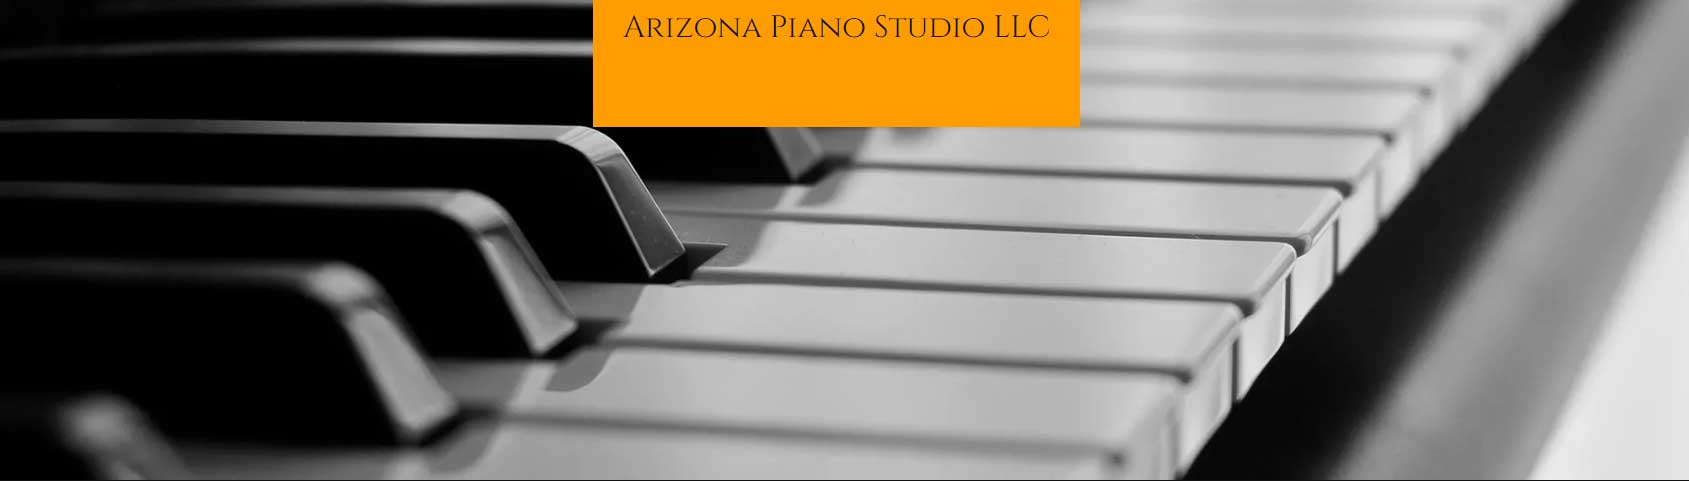 arizona-piano-studio-header